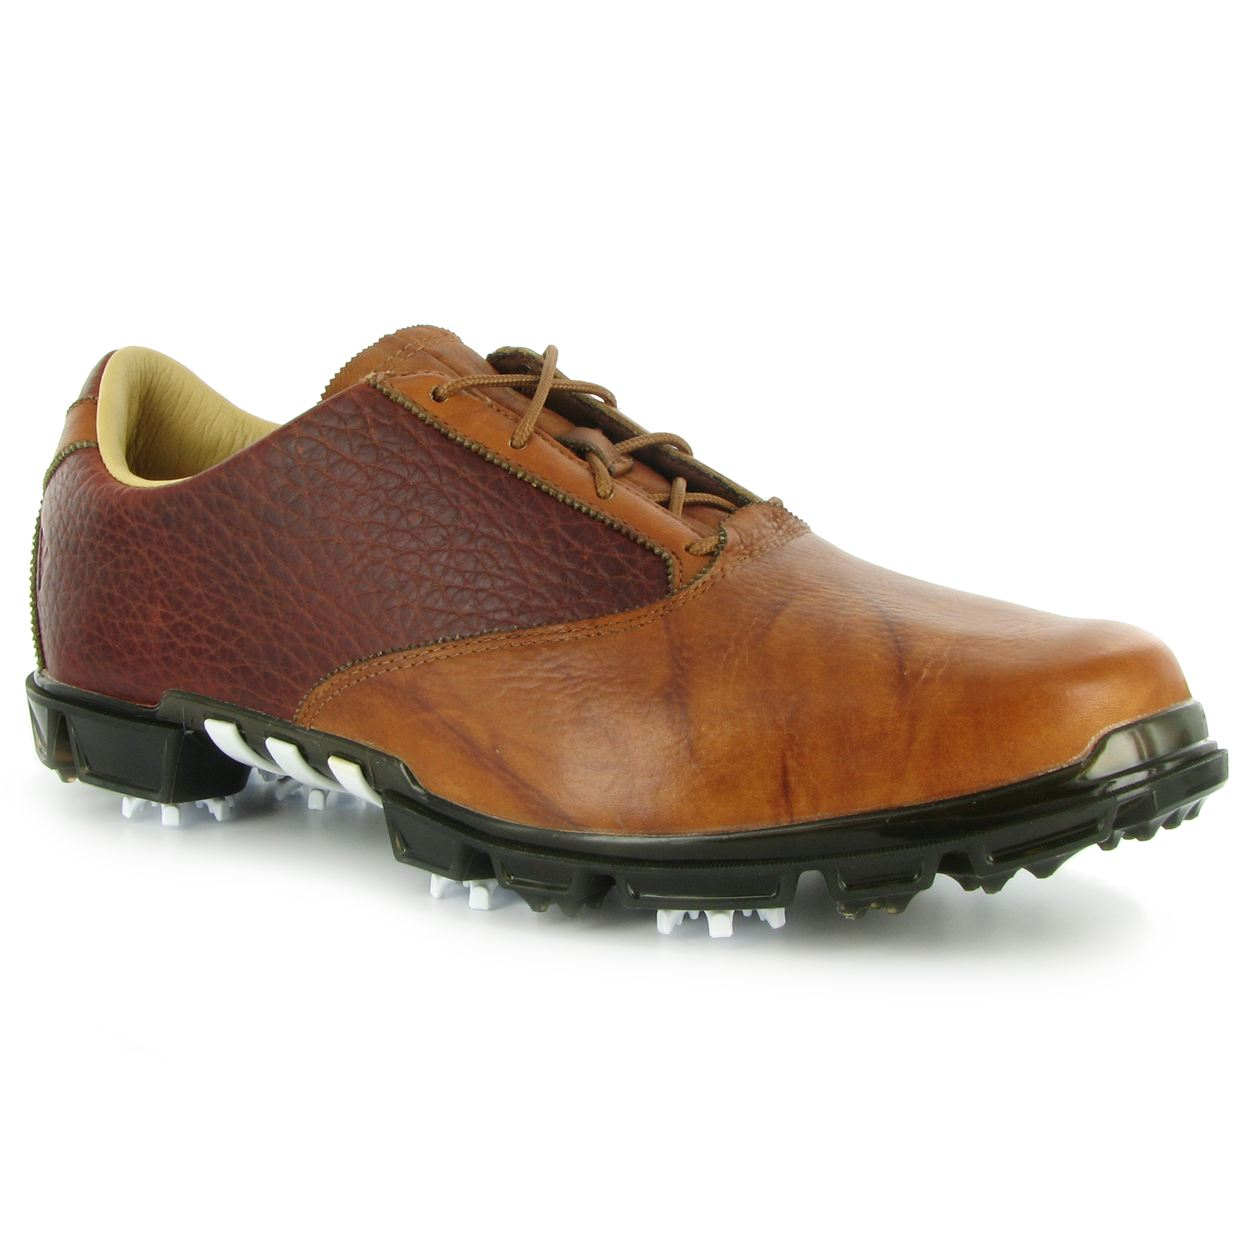 Brown Adidas Adipure Golf Shoes